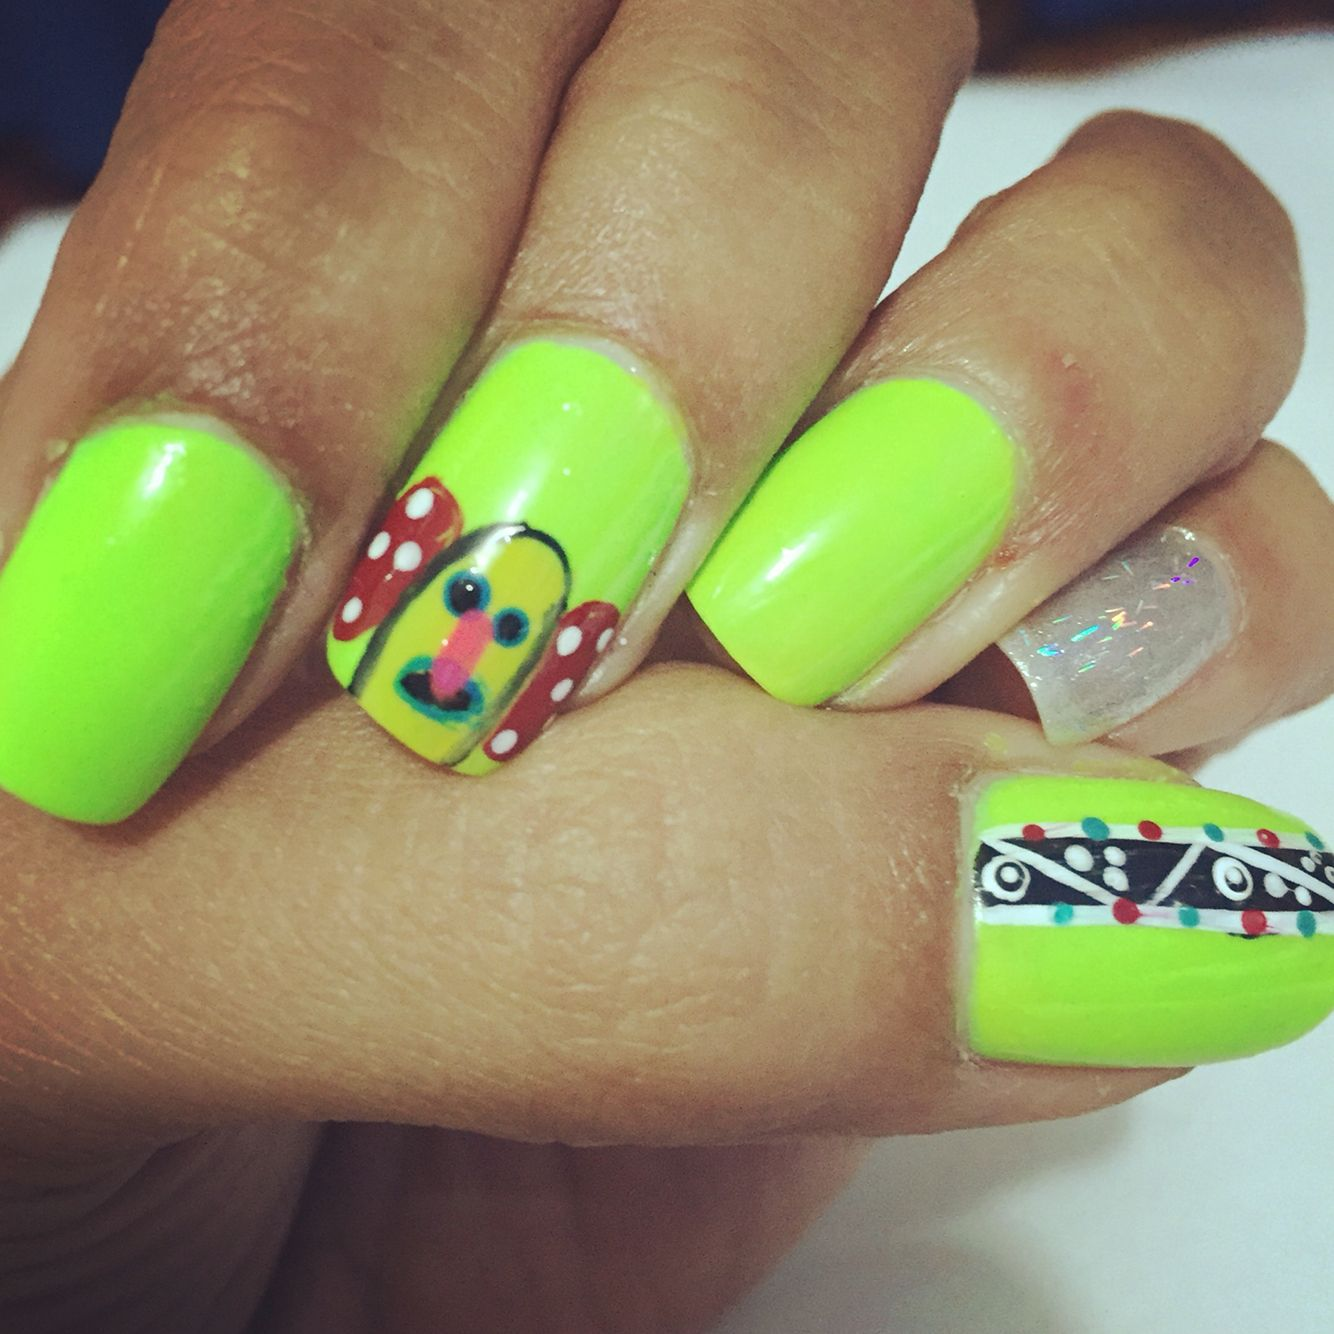 Nails design !! Uñas de carnaval !!! Marimonda | uñas | Pinterest ...